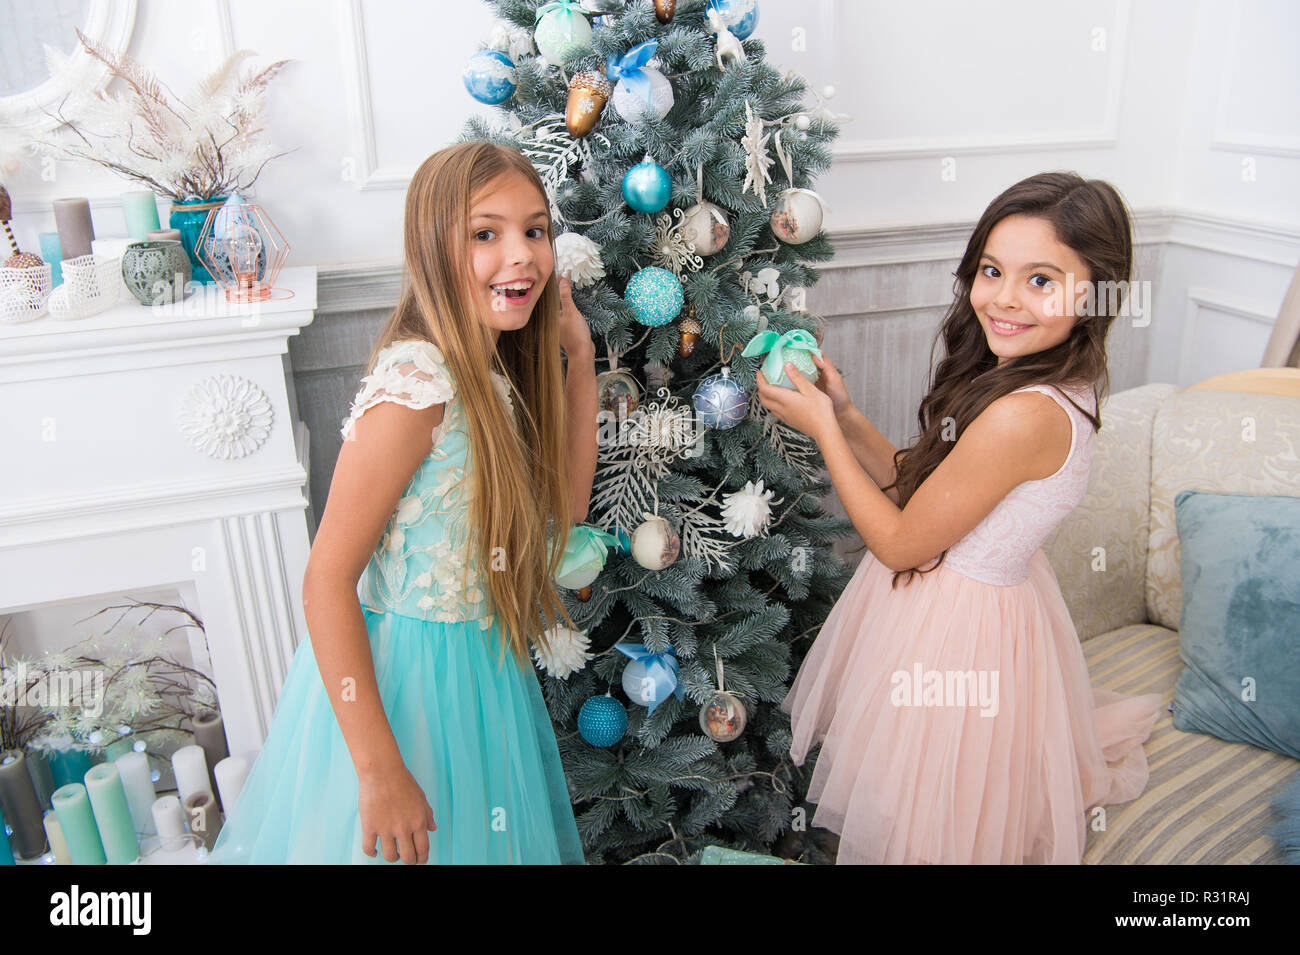 Sisters decorating tree. Cherished holiday activity. Kids fashionable dresses decorating christmas tree. Family tradition concept. Girls decorating christmas tree together. Siblings busy decorating. Stock Photo